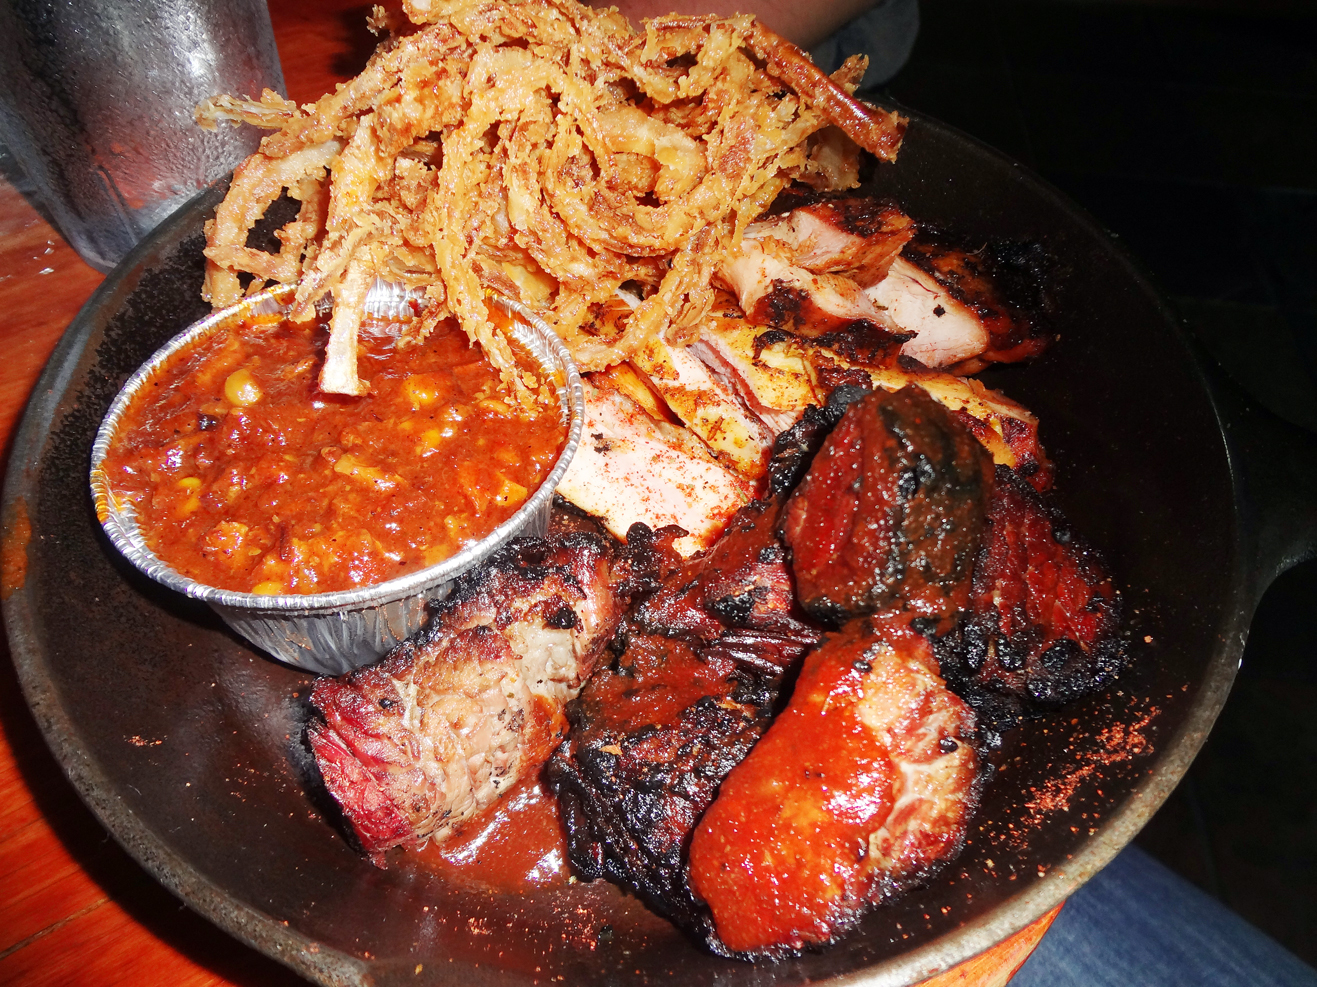 Two-meat plate: burnt ends and char-smoked chicken with onion hay and Brunswick stew